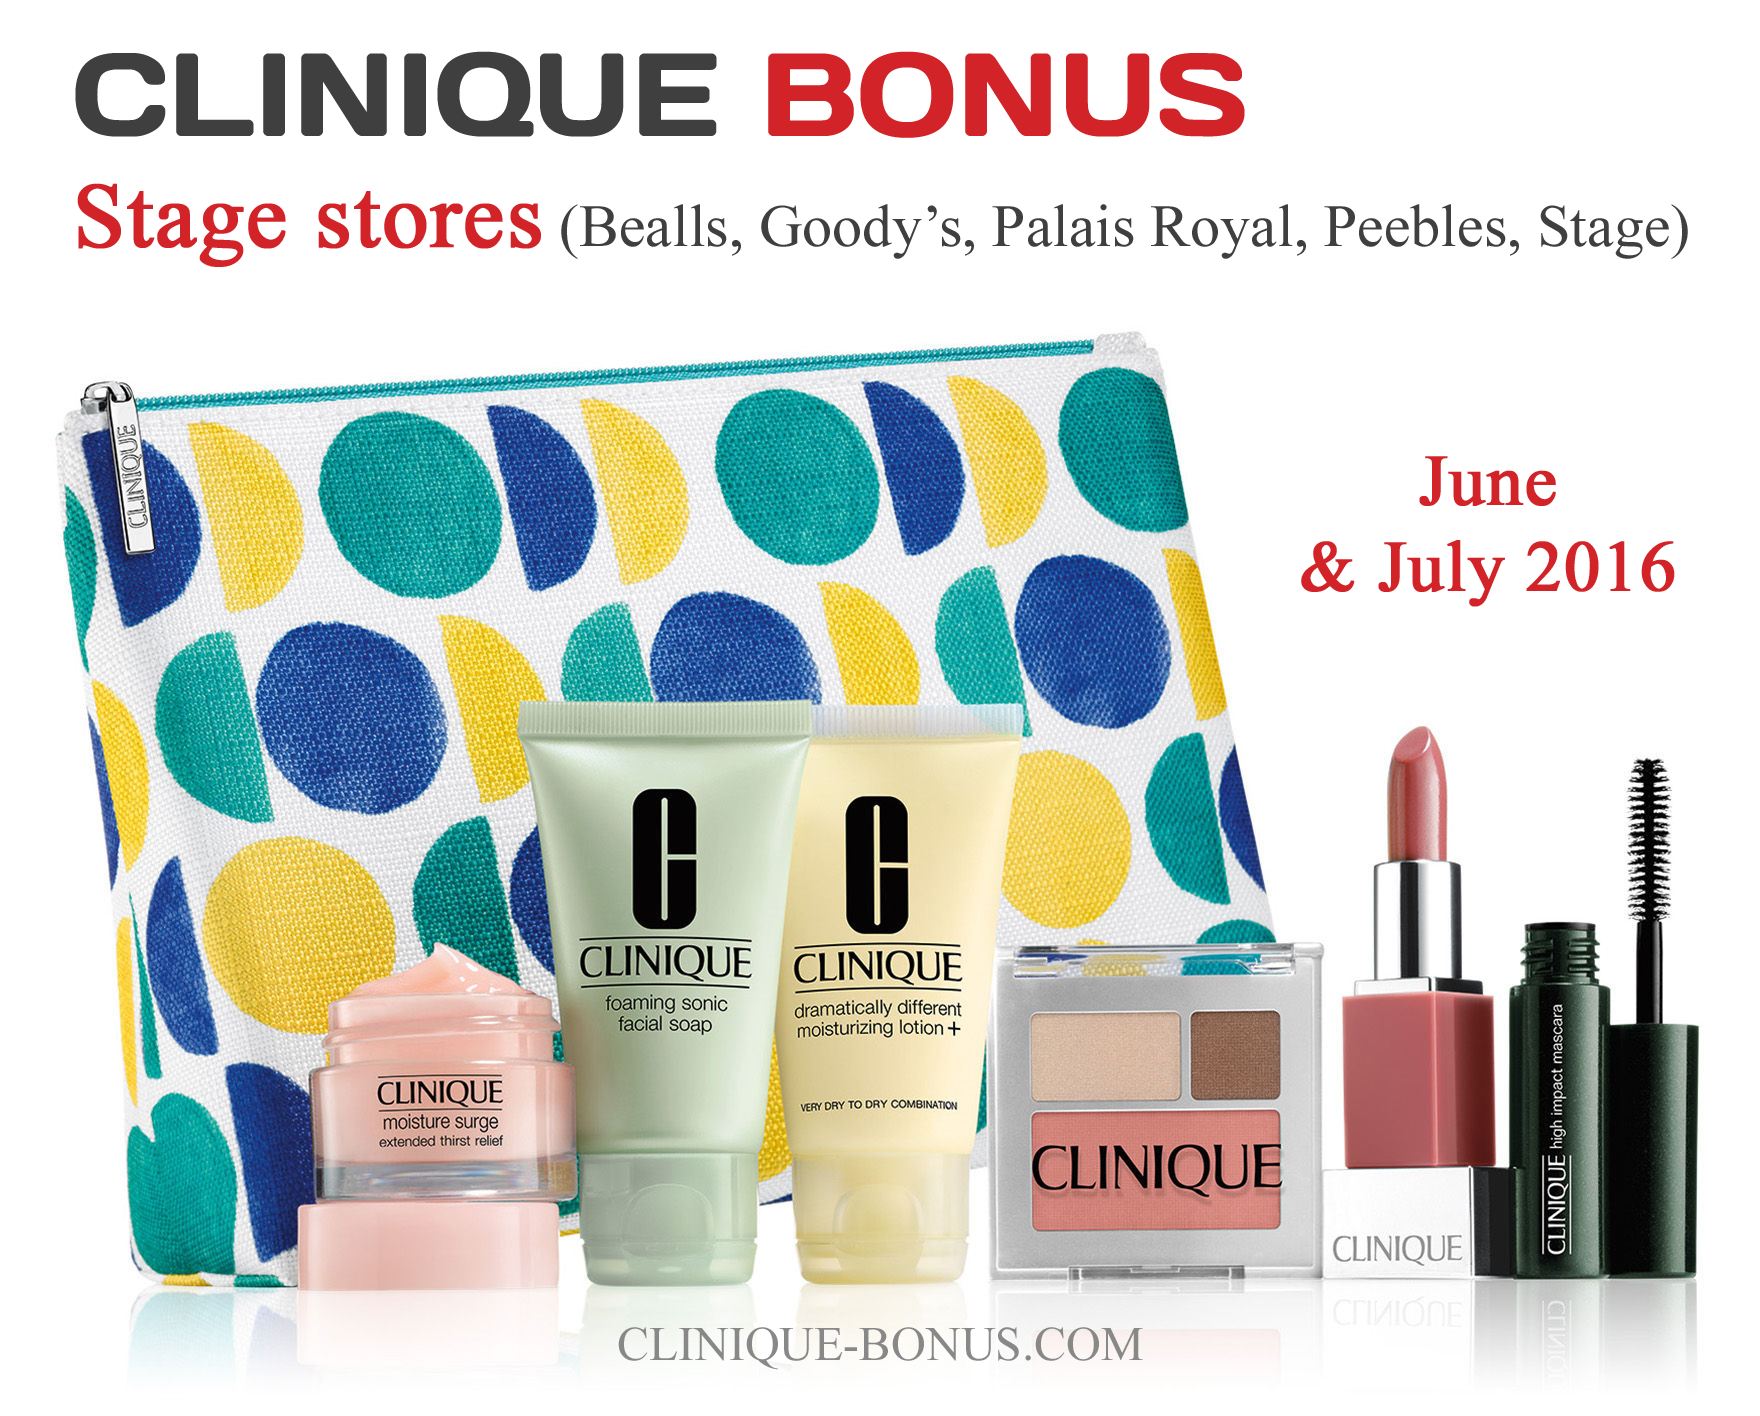 This is the Clinique gift you can get from Stage stores